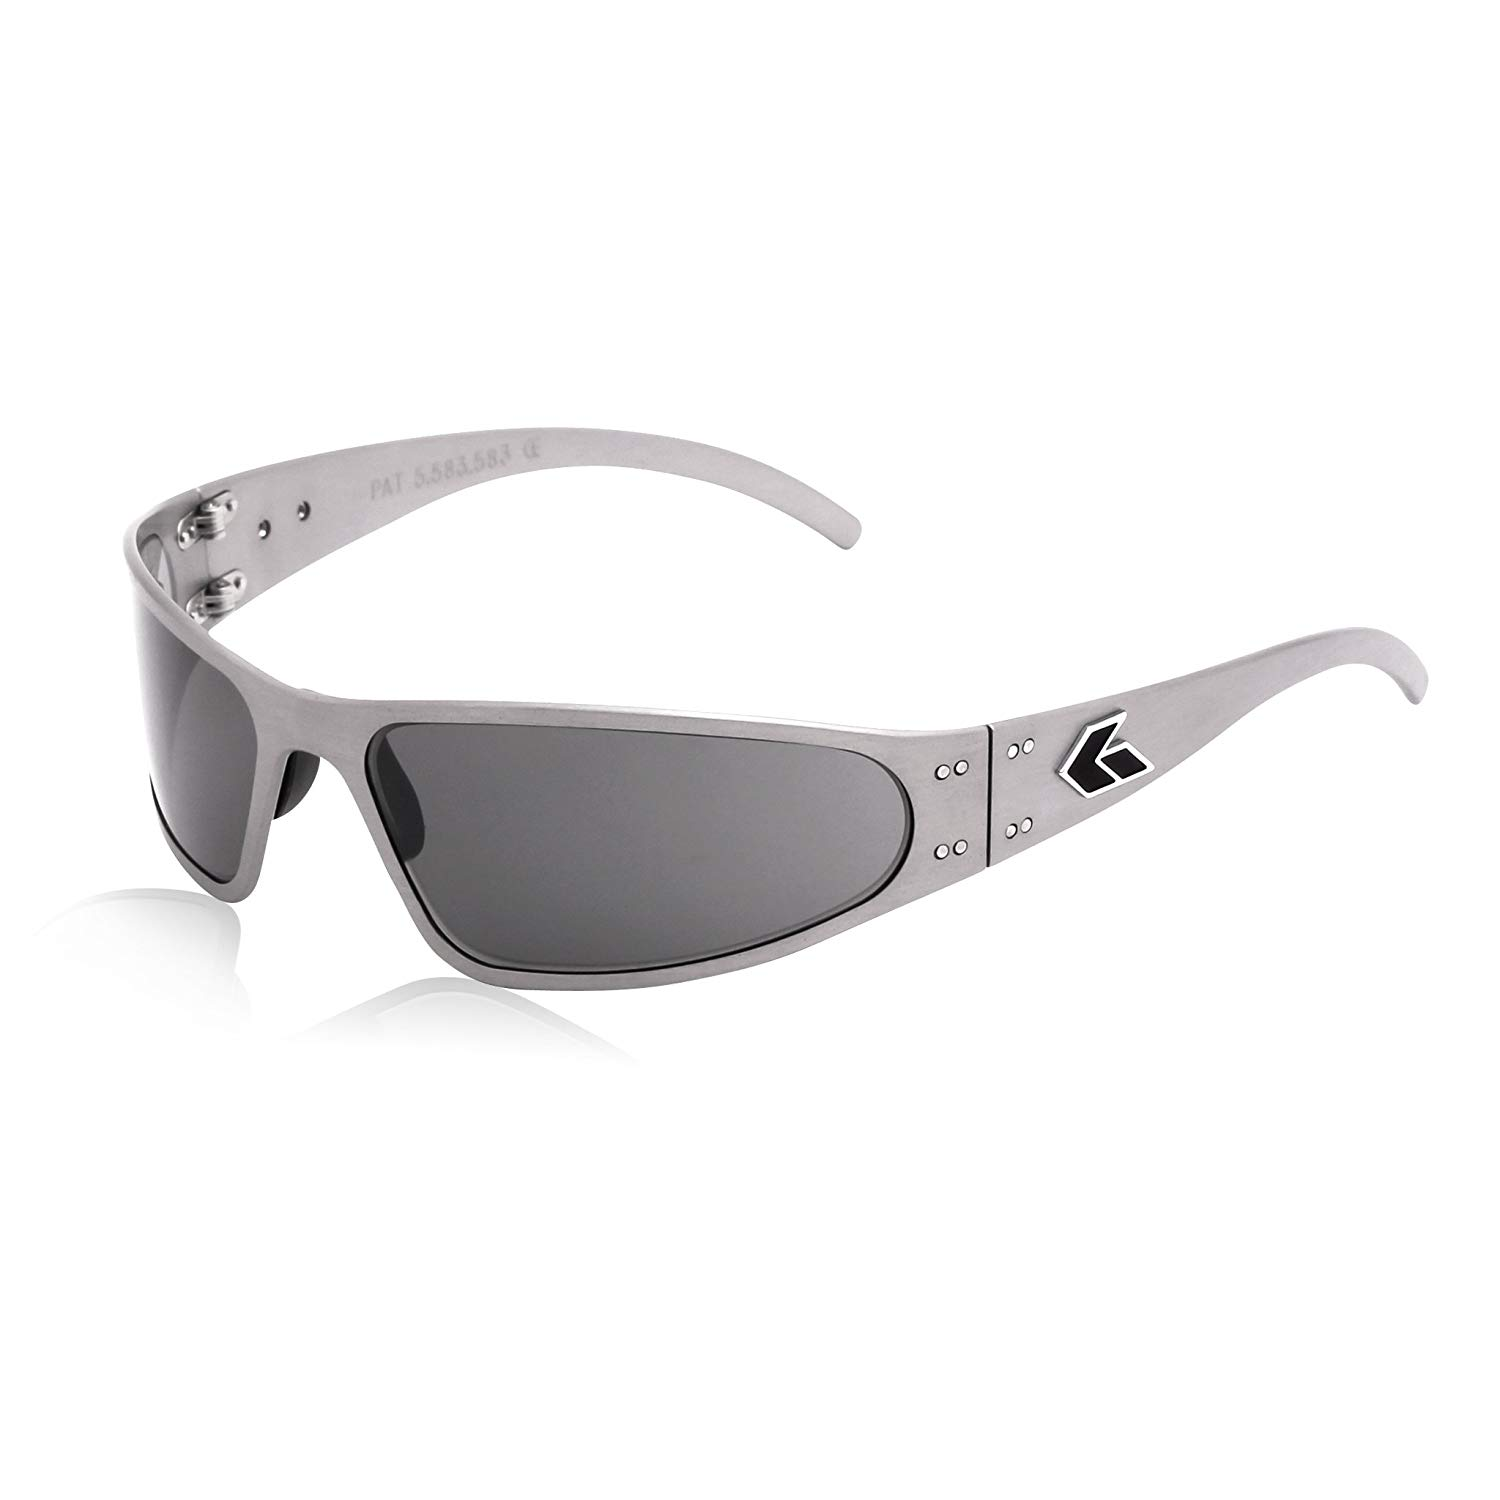 9ddded11136c Get Quotations · GATORZ Wraptor Sunglasses, Metal Aluminum Frame, Military  Tactical Style, Made in USA